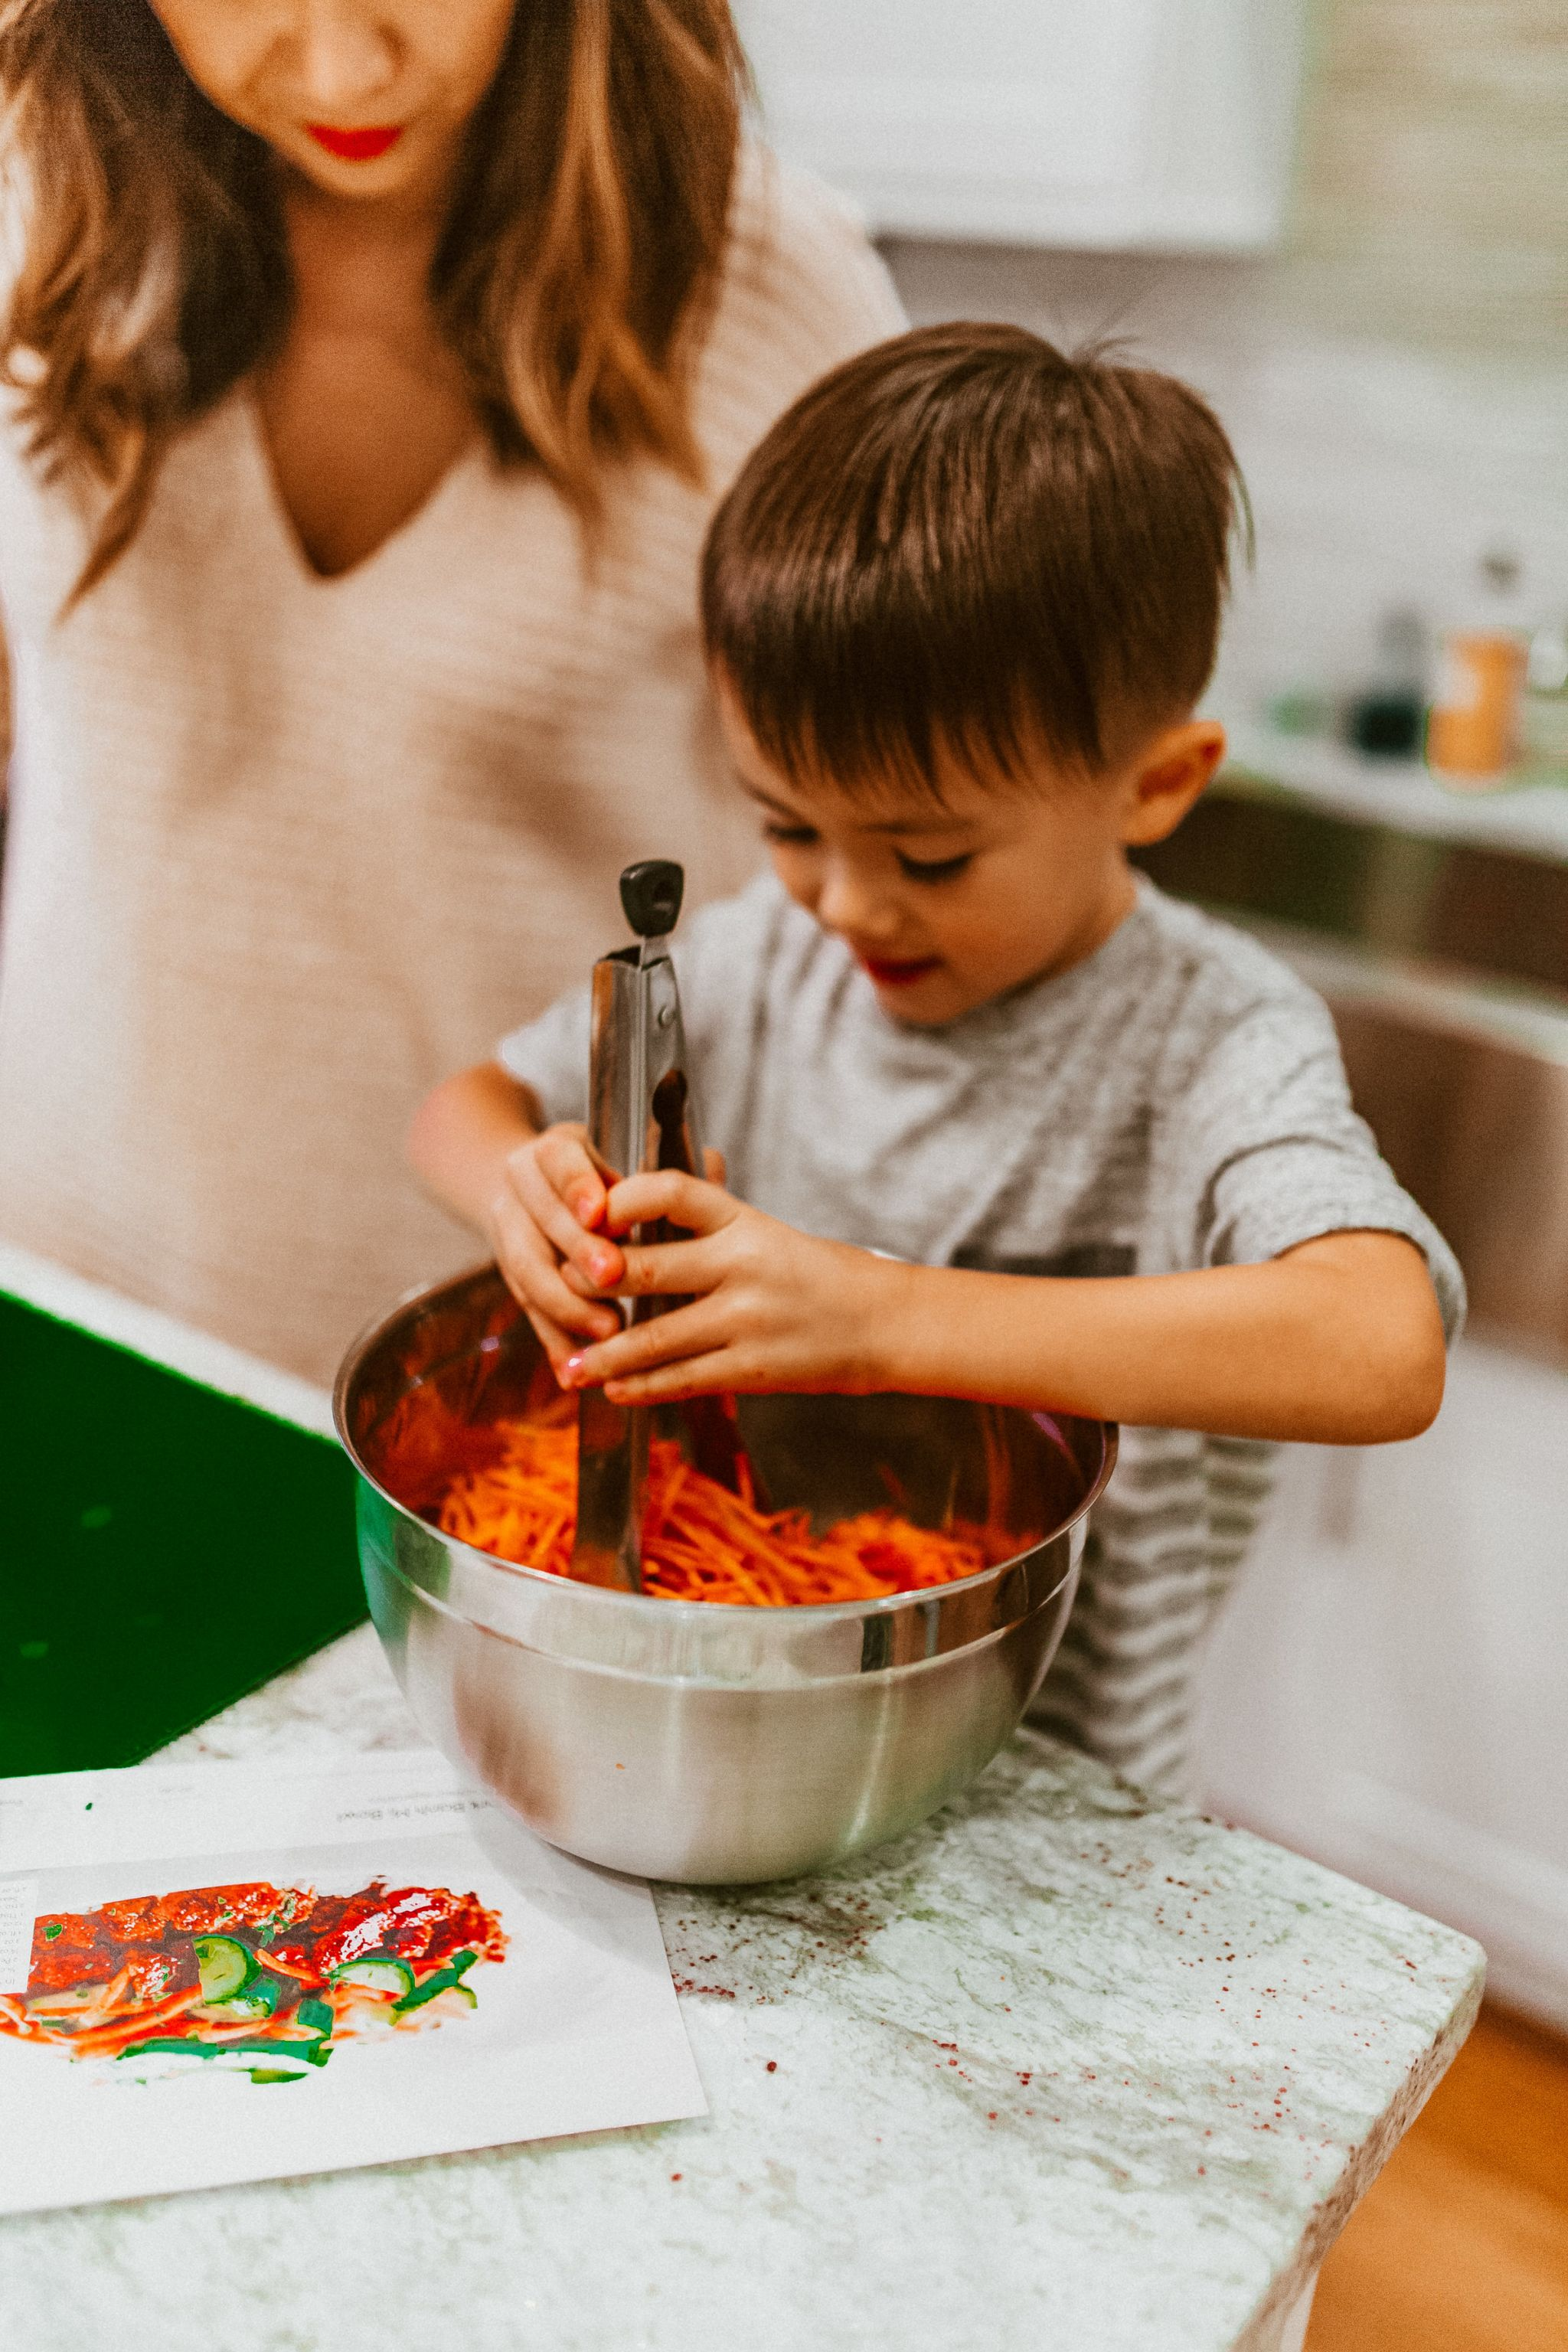 home chef kit, kids who cook, kids cooking, Only Tip you need in cooking, Home Chef in Marianos, Jennifer Worman, Chicago Food Blogger, Best Food at Home, Cooking Recipes, Marianos, Chicago Food, chicago mom blogger